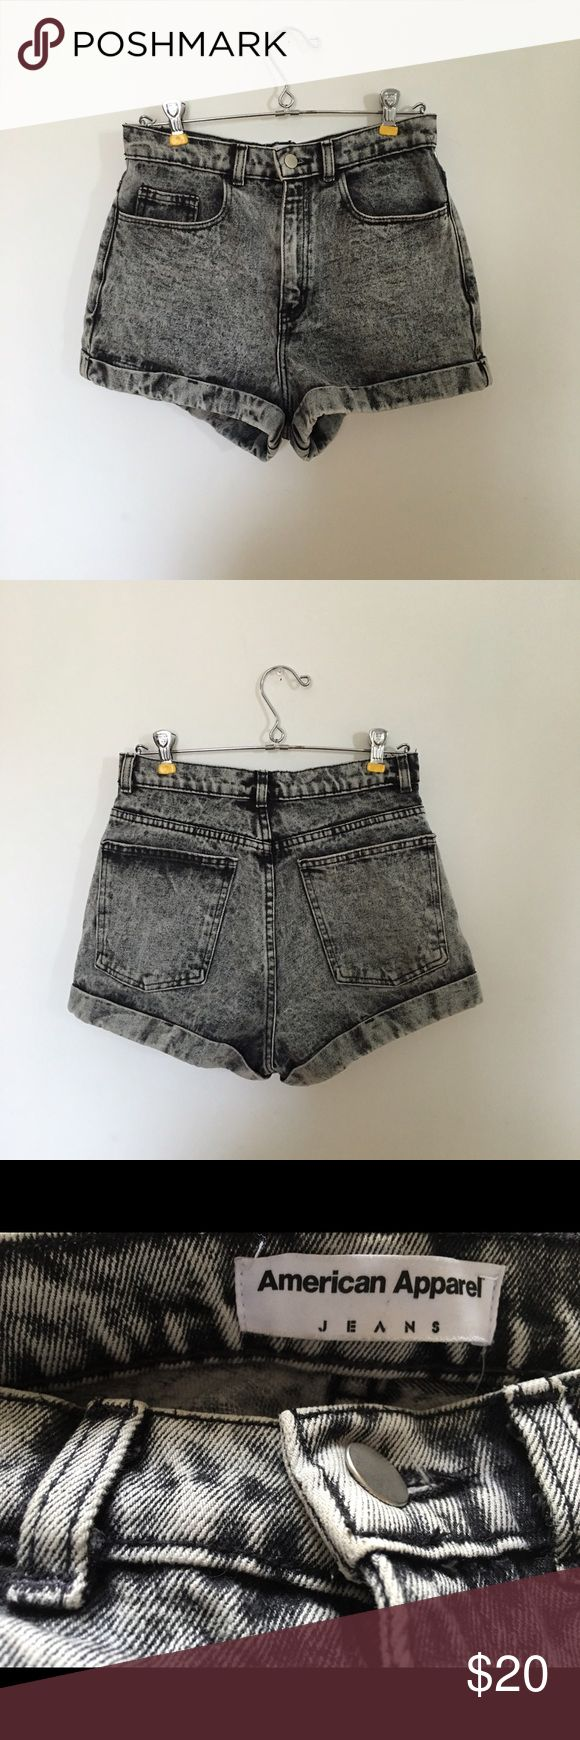 American Apparel Acid Wash Cuffed Shorts American Apparel high waisted black acid wash shorts! Size 28- fit more like a 26/27.  Denim has very little stretch and shorts are slightly cheeky. American Apparel Shorts Jean Shorts